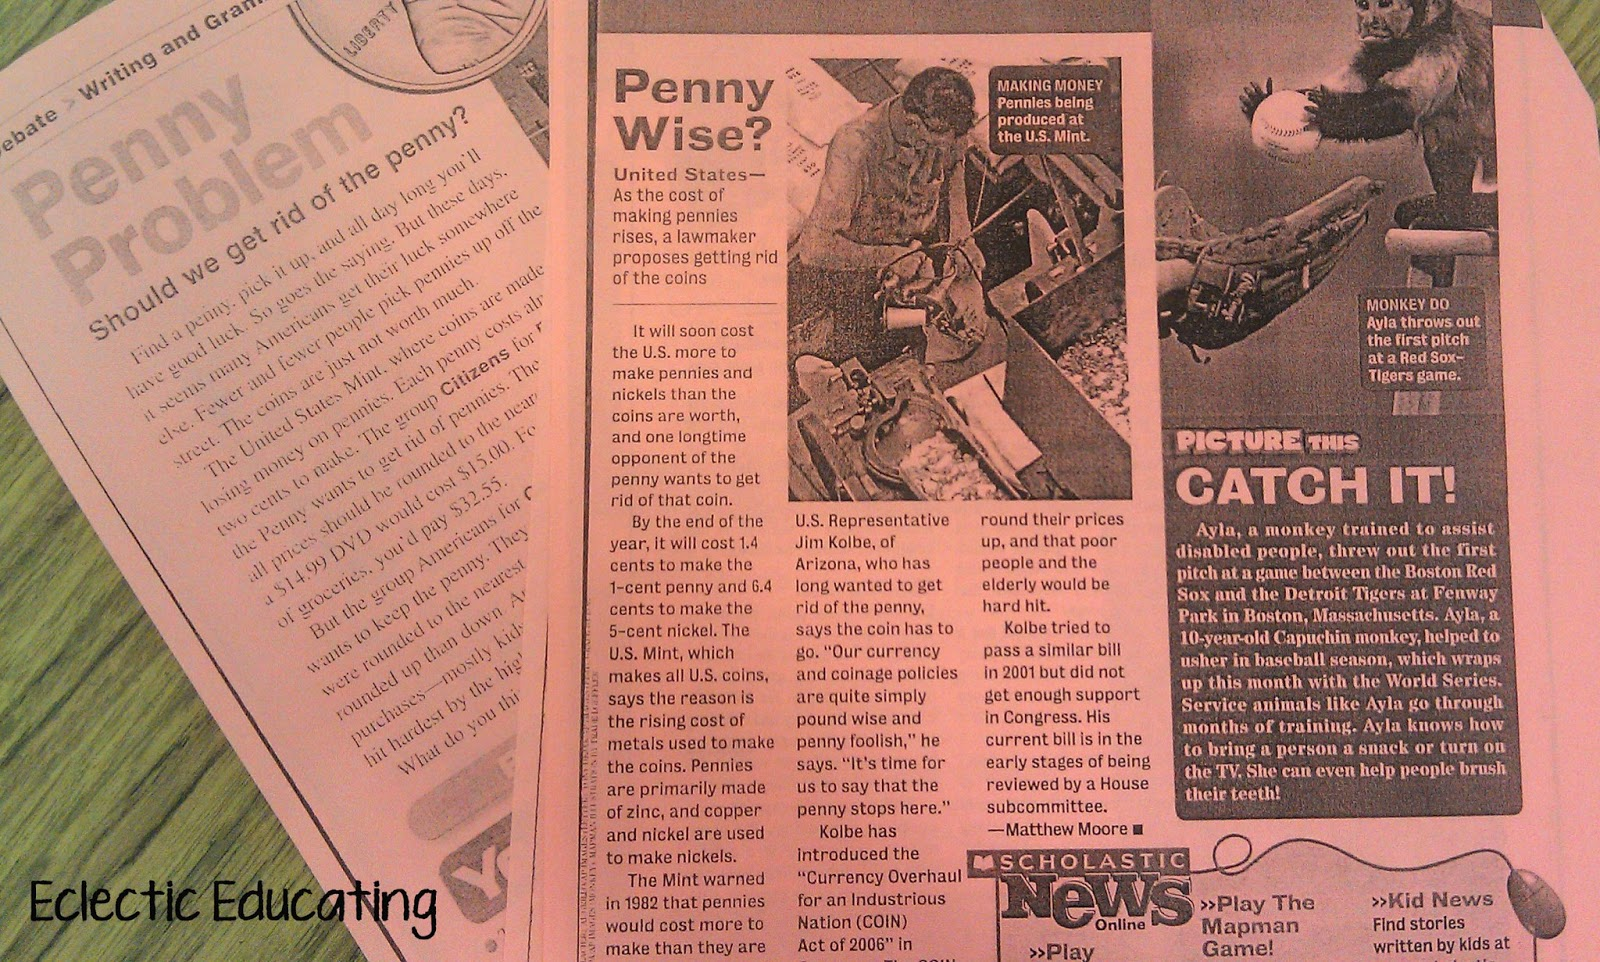 penny essay Free essay: between 2001 and 2006, there has been an increase of 6 cents for the reproduction of the penny this increase displays economic problems that.